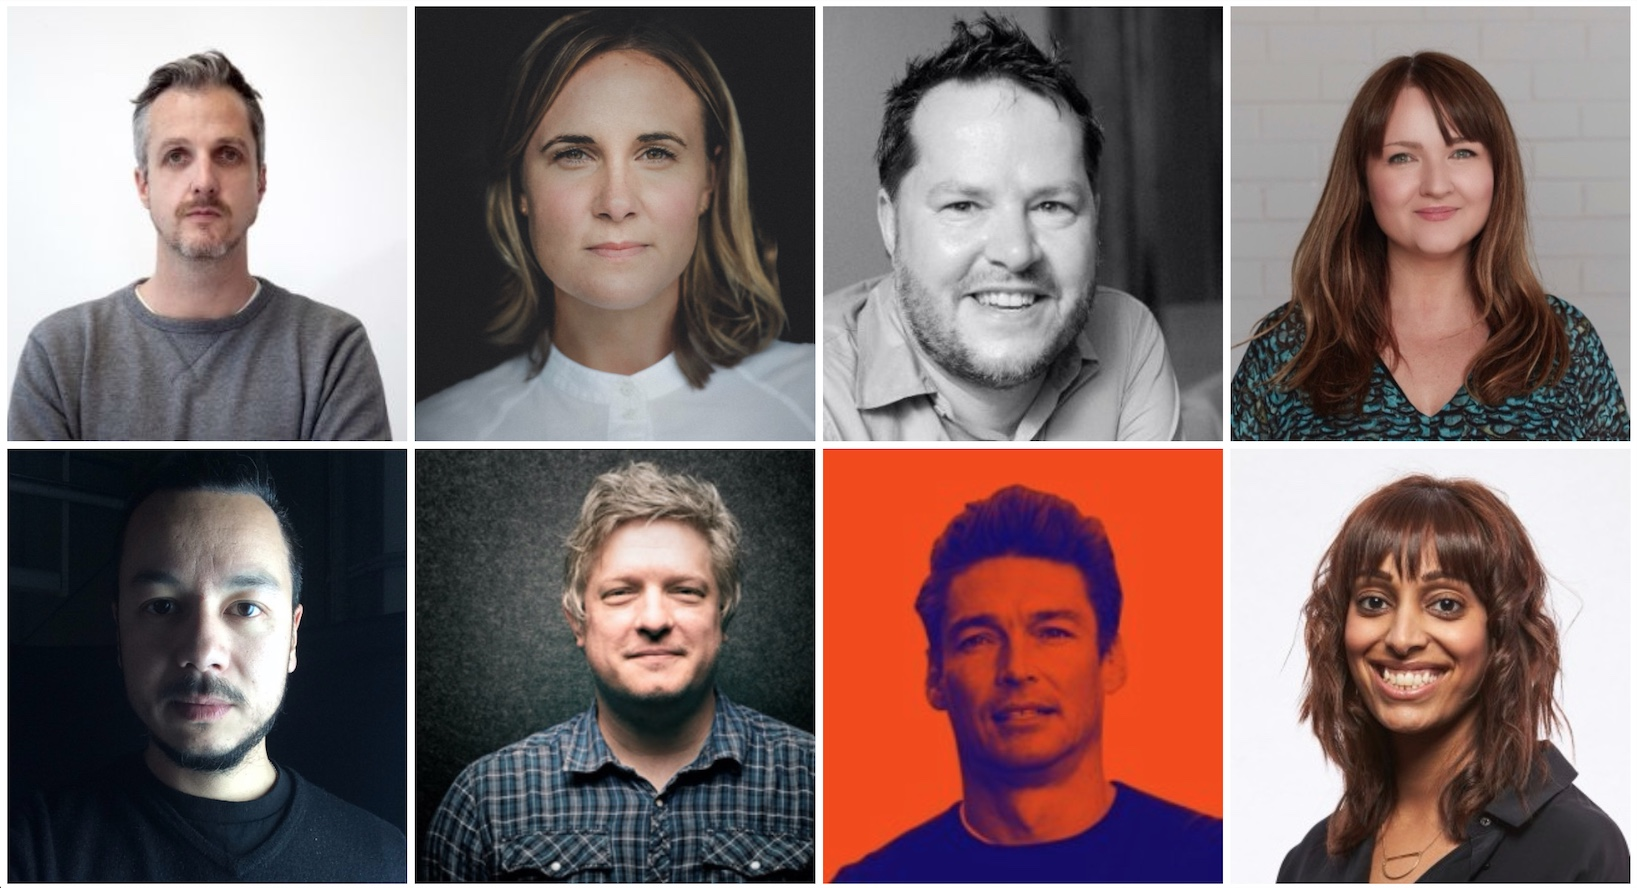 Cannes Lions announces the 2021 shortlist jury with eight jury members from Australia